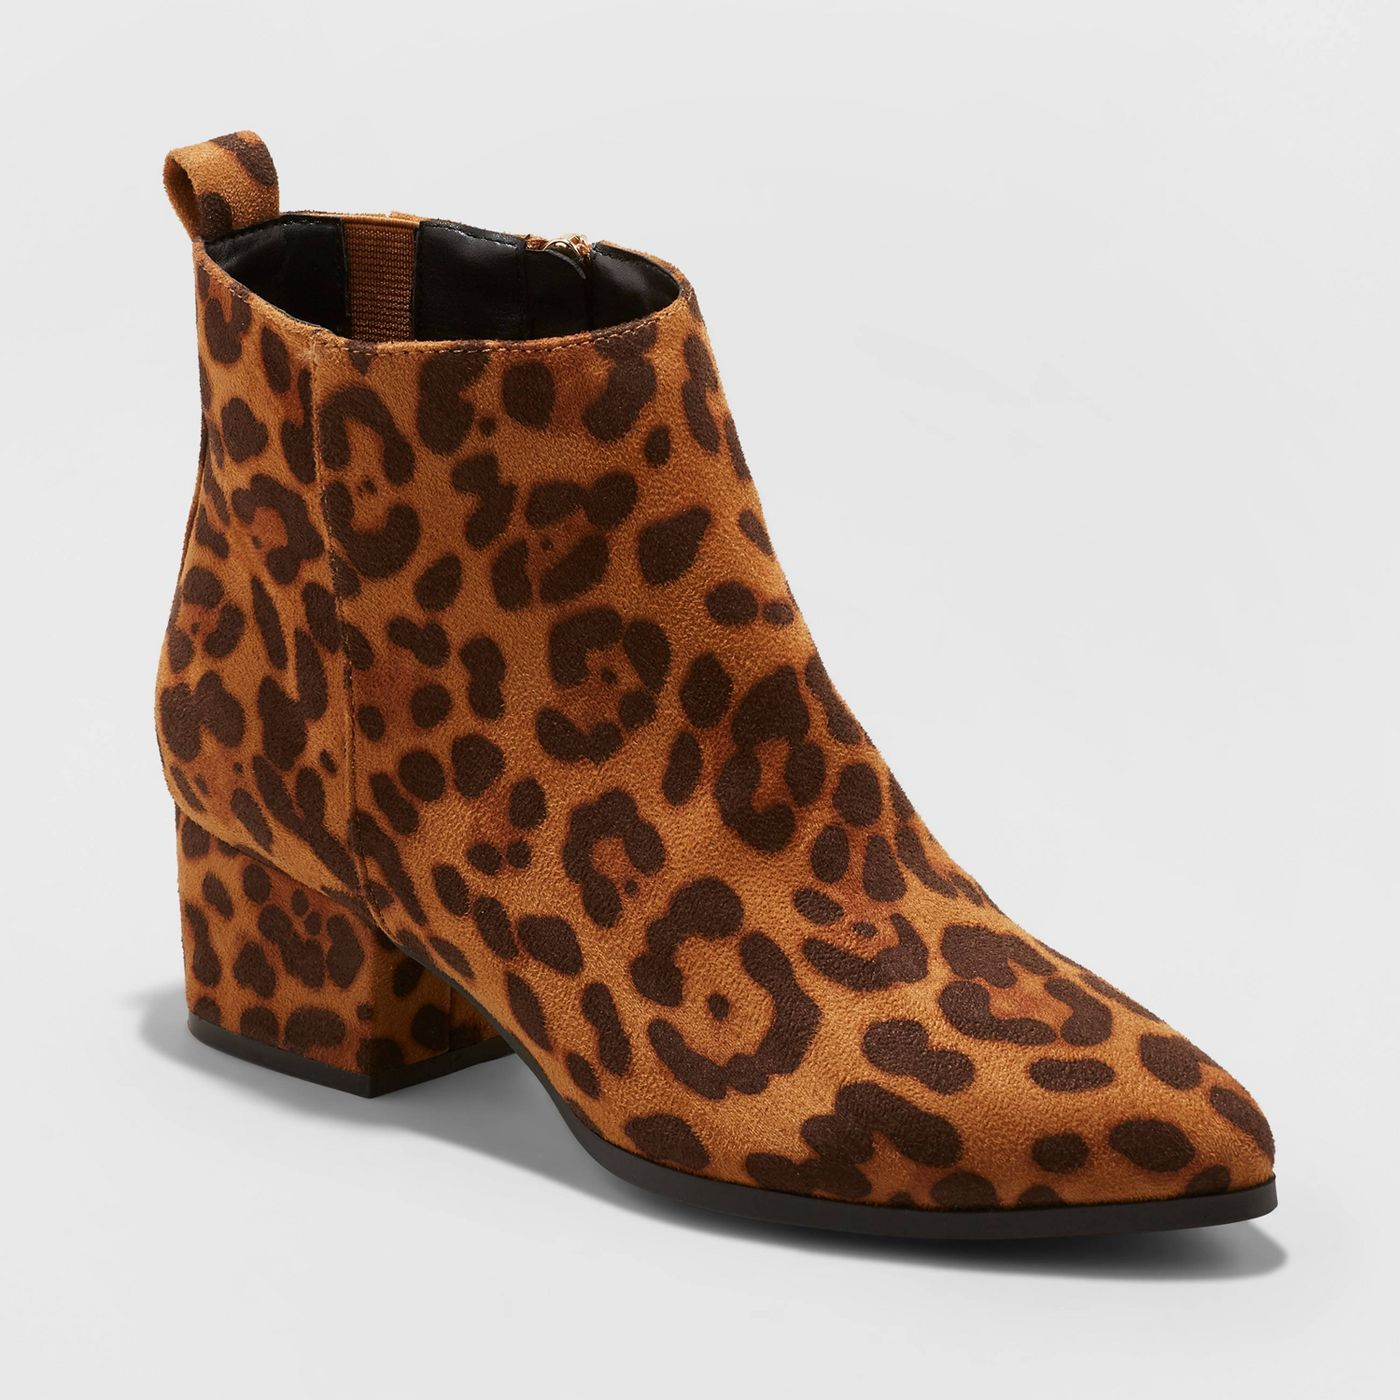 Leopard print booties are on-trend for popular fall boots 2019!